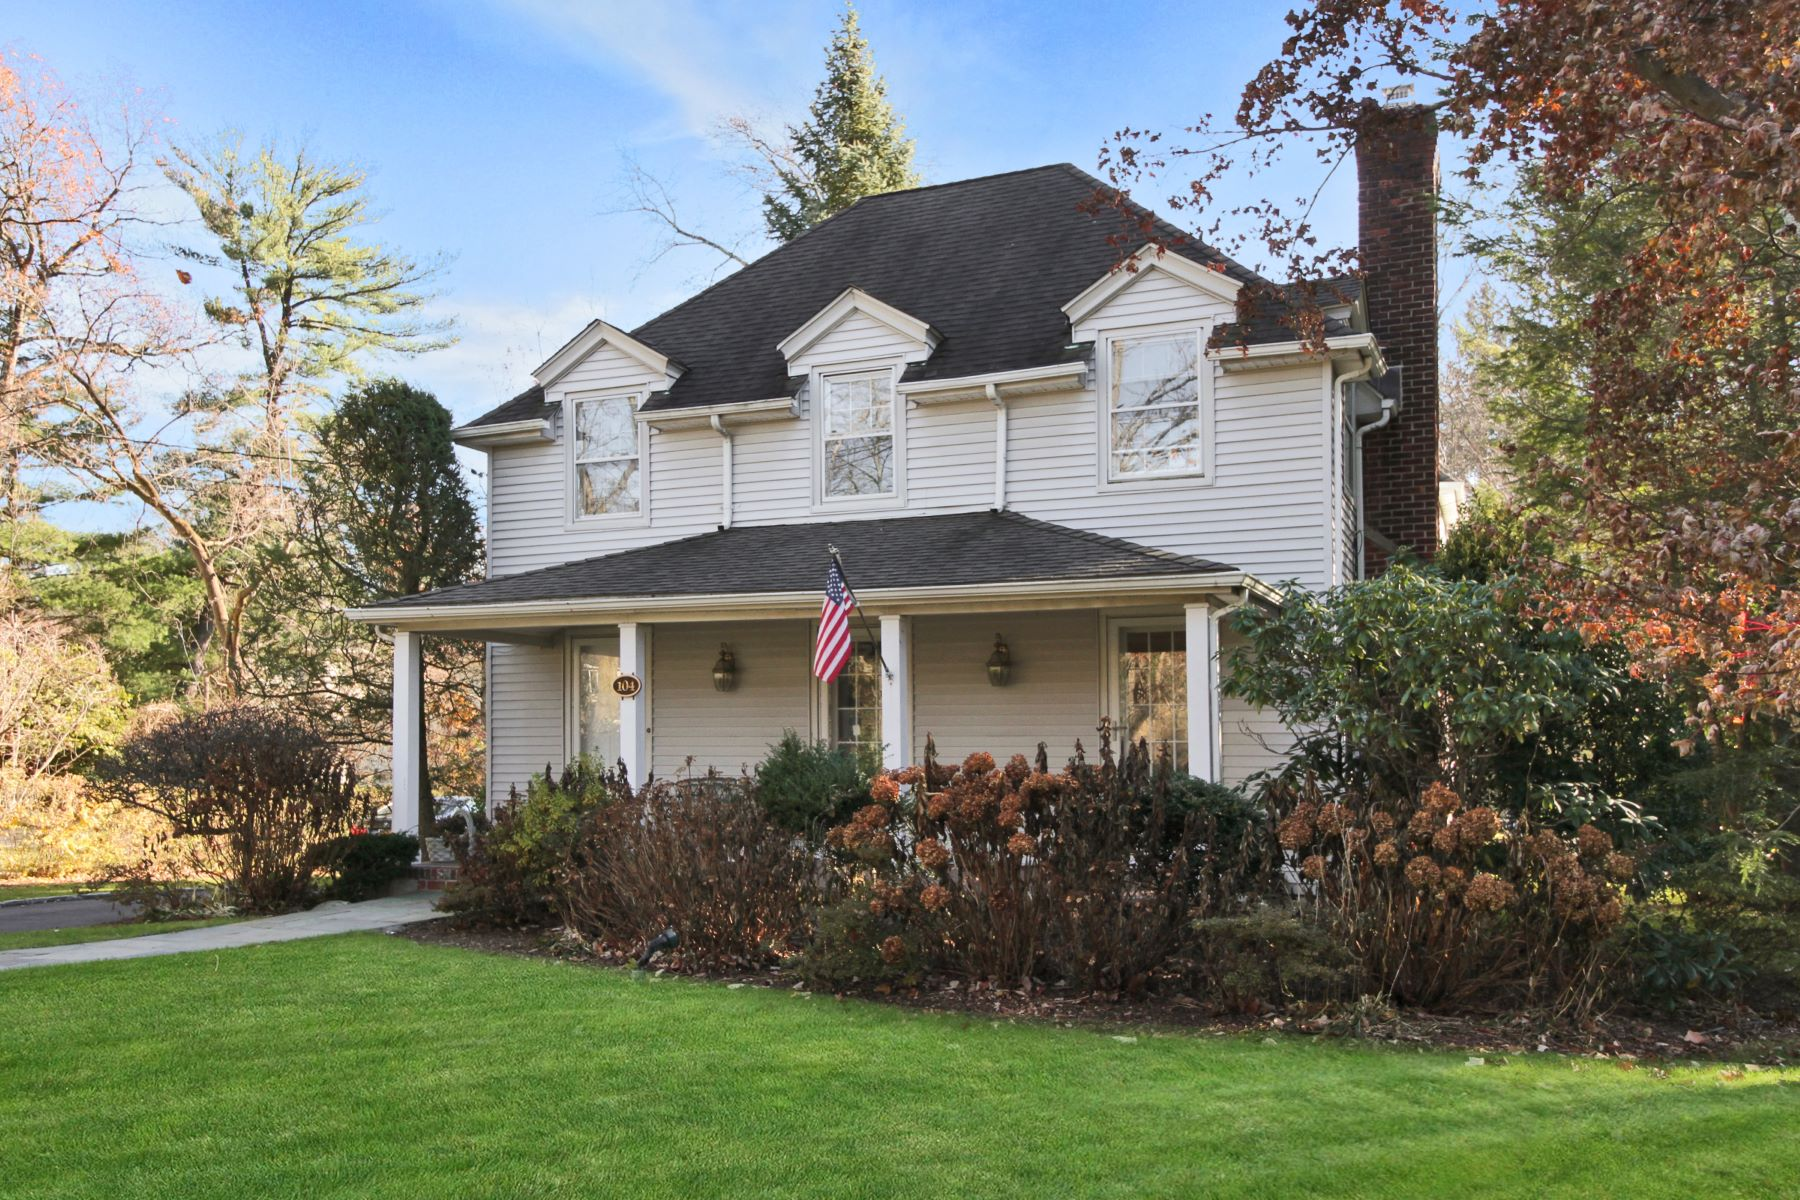 Single Family Home for Sale at Immaculate Home in Scarsdale 104 Garden Road, Scarsdale, New York, 10583 United States